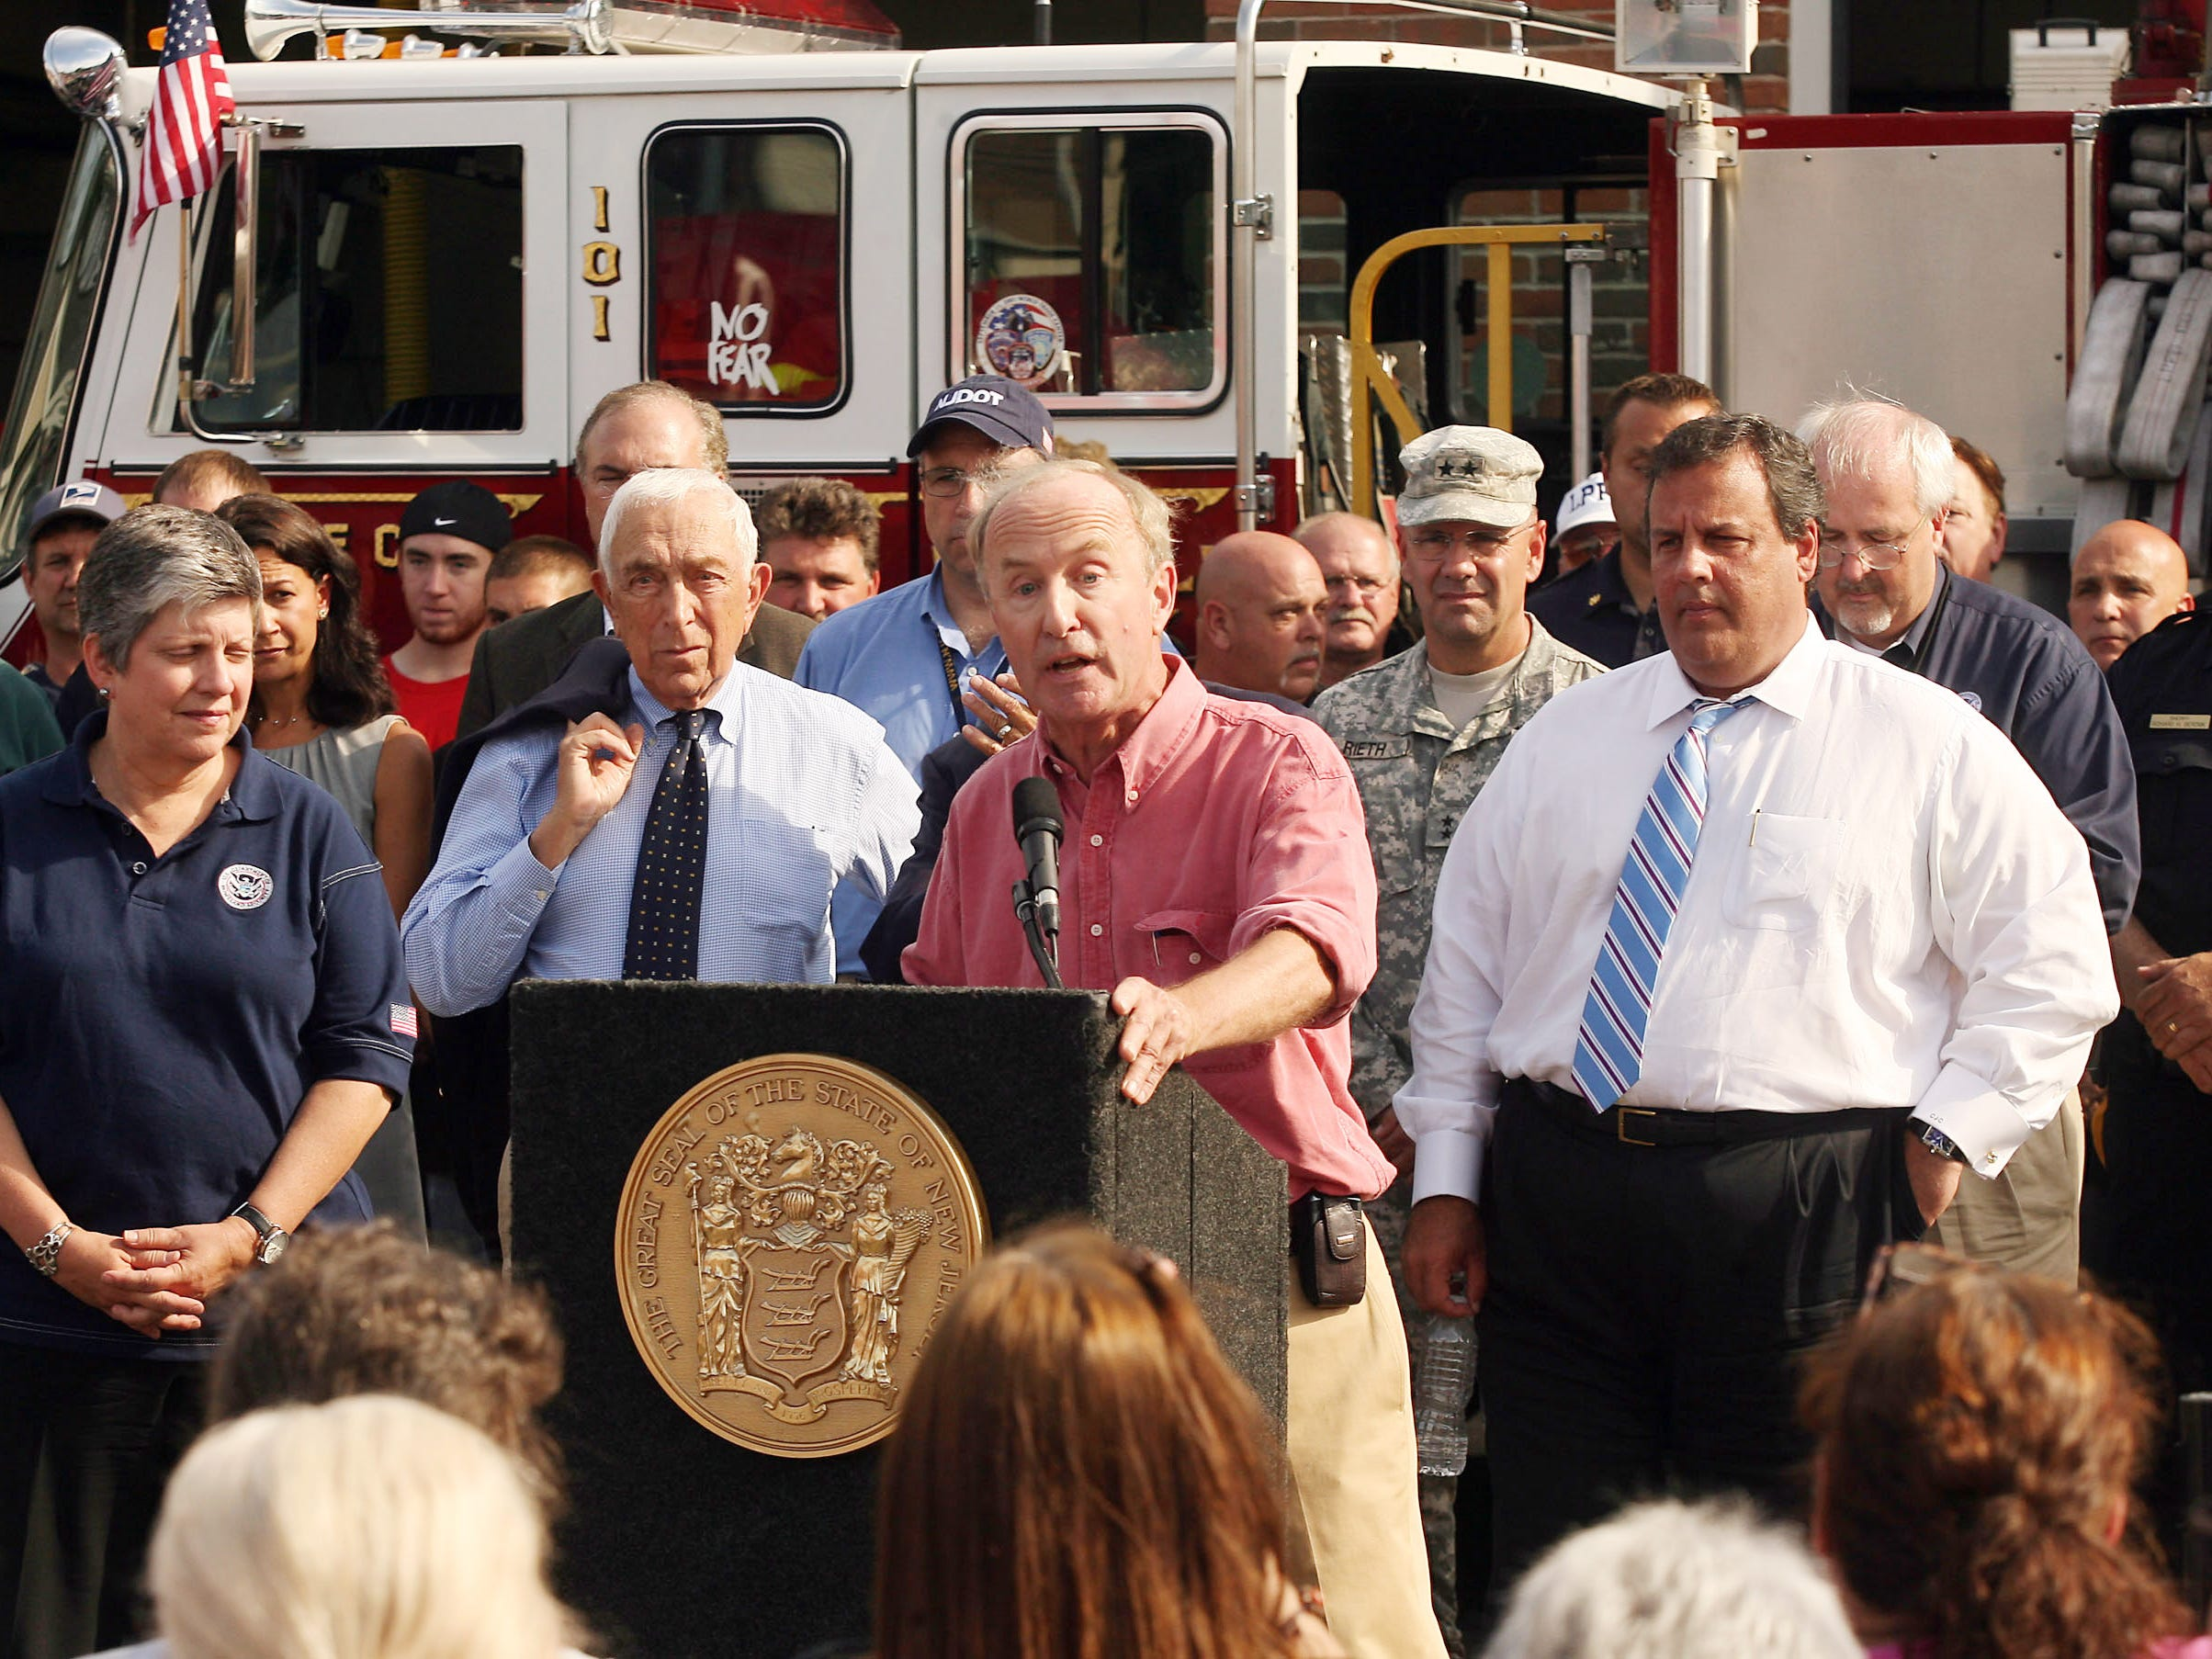 Congressman Rodney Frelinghuysen, c, speaks joined by Department of Homeland Security Secretary Janet Napolitano, Sen. Frank Lautenberg, D-NJ, and New Jersey Gov. Chris Christie at Lincoln Park Fire Department Hose Co. 1 as Obama administration officials continue to tour the eastern seaboard in the aftermath of Hurricane Irene.